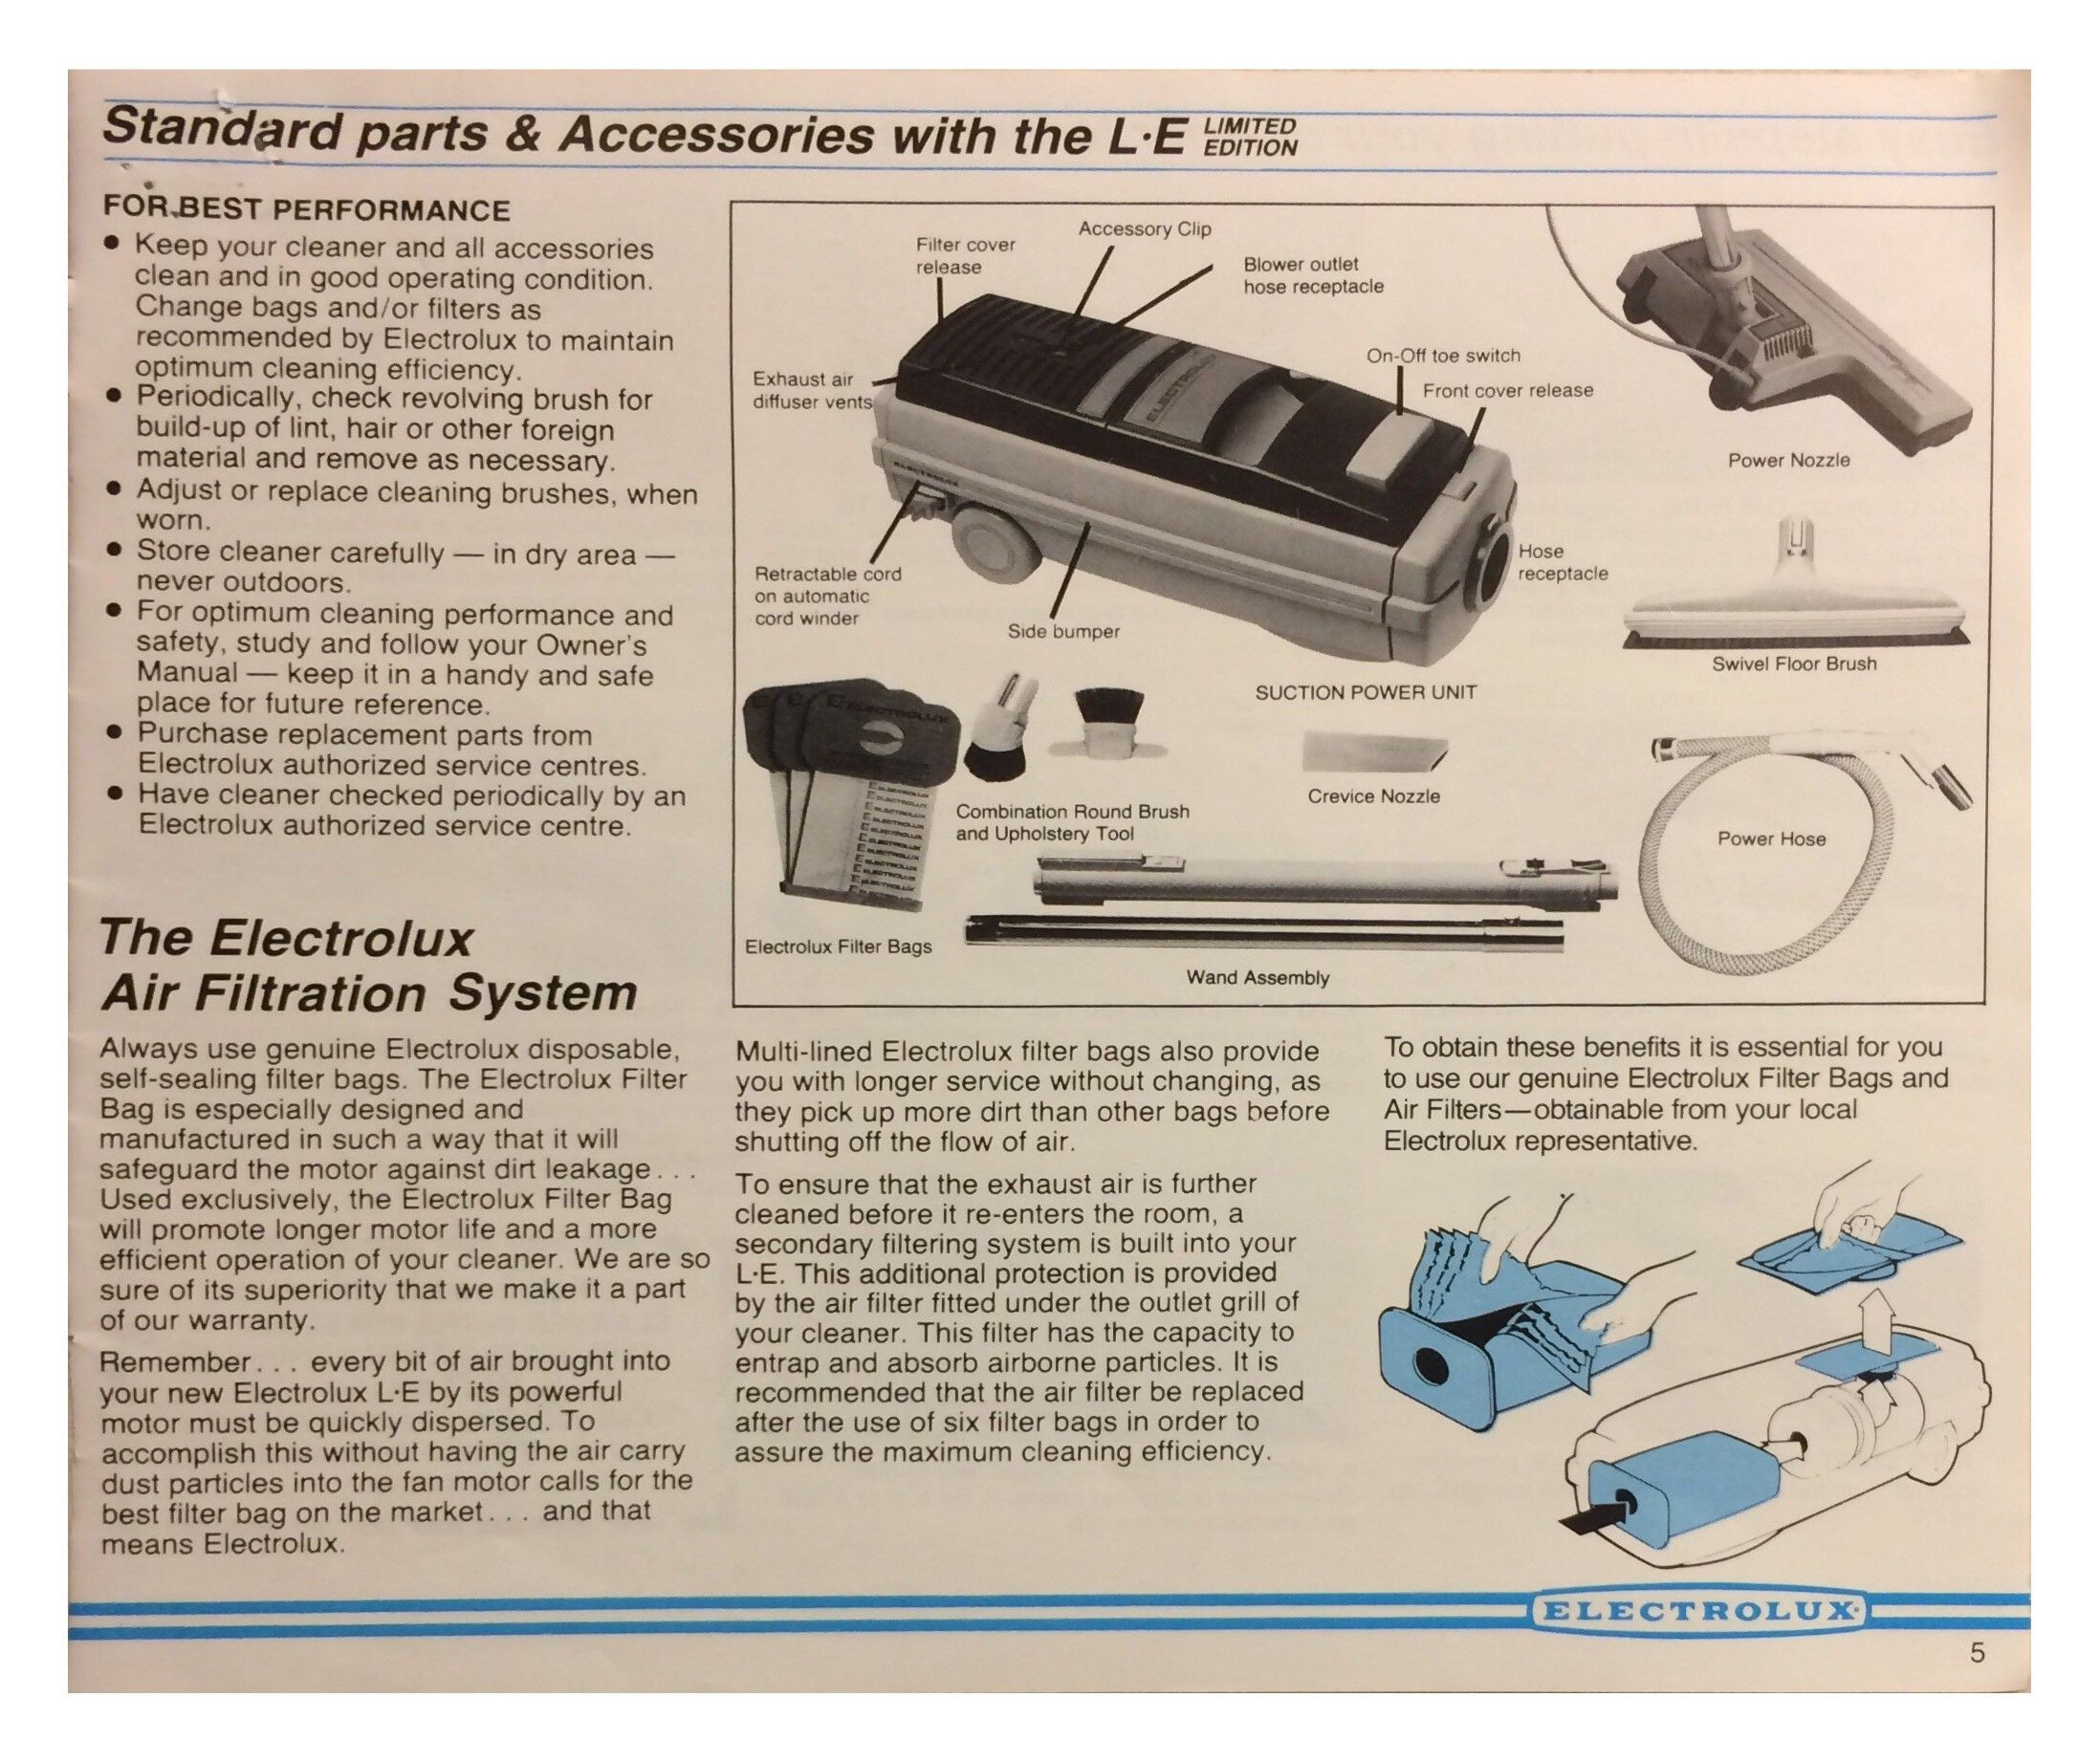 Electrolux 2100 Parts Diagram Le Electrolux Limited Edition Vacuum Cleaner Manual Pg 5 Of Electrolux 2100 Parts Diagram